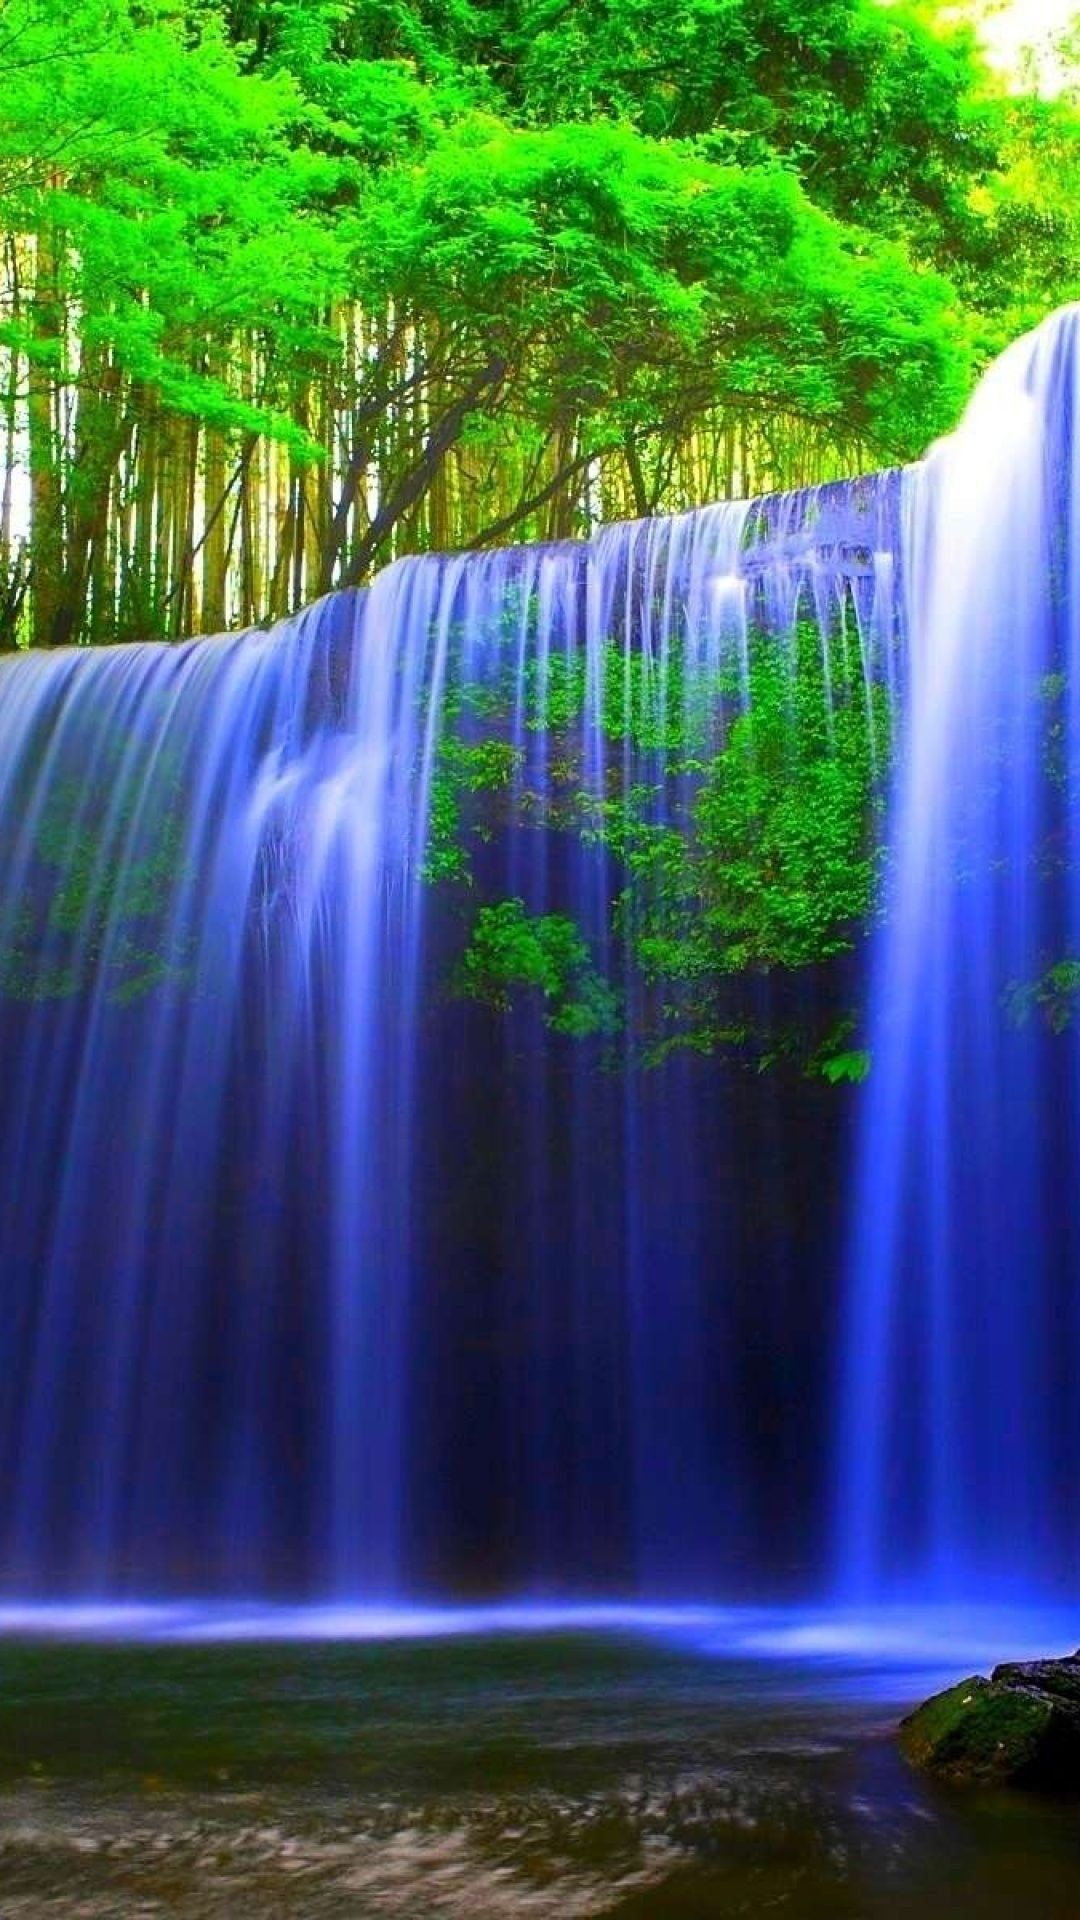 Real Waterfall Photo > Flip Wallpapers > Download Free